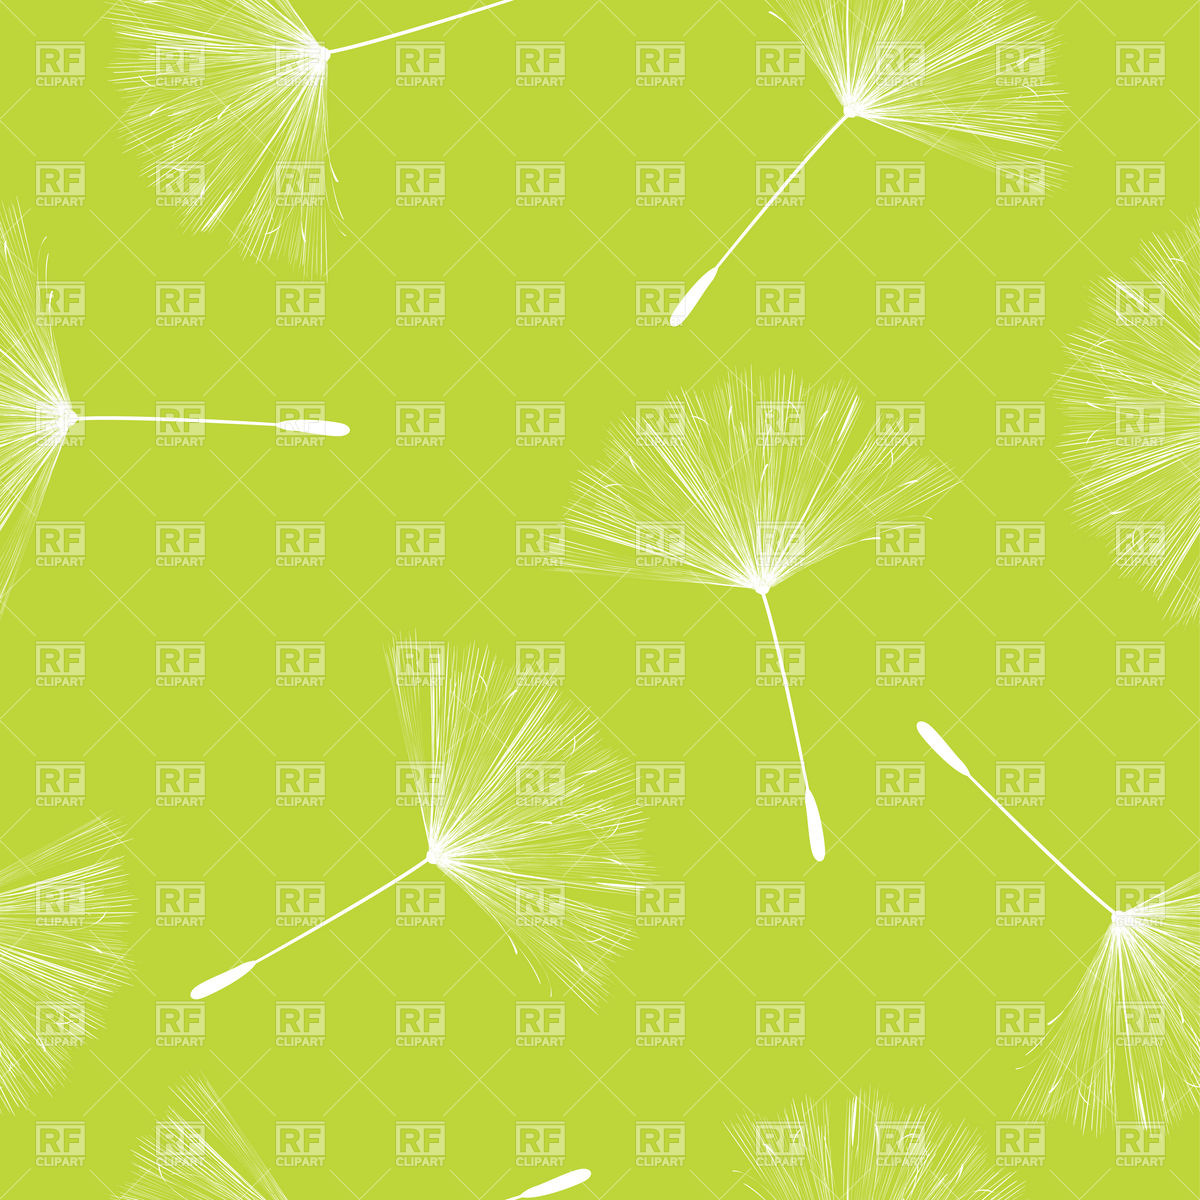 Seamless background with flying dandelion seeds Vector Image #6601.